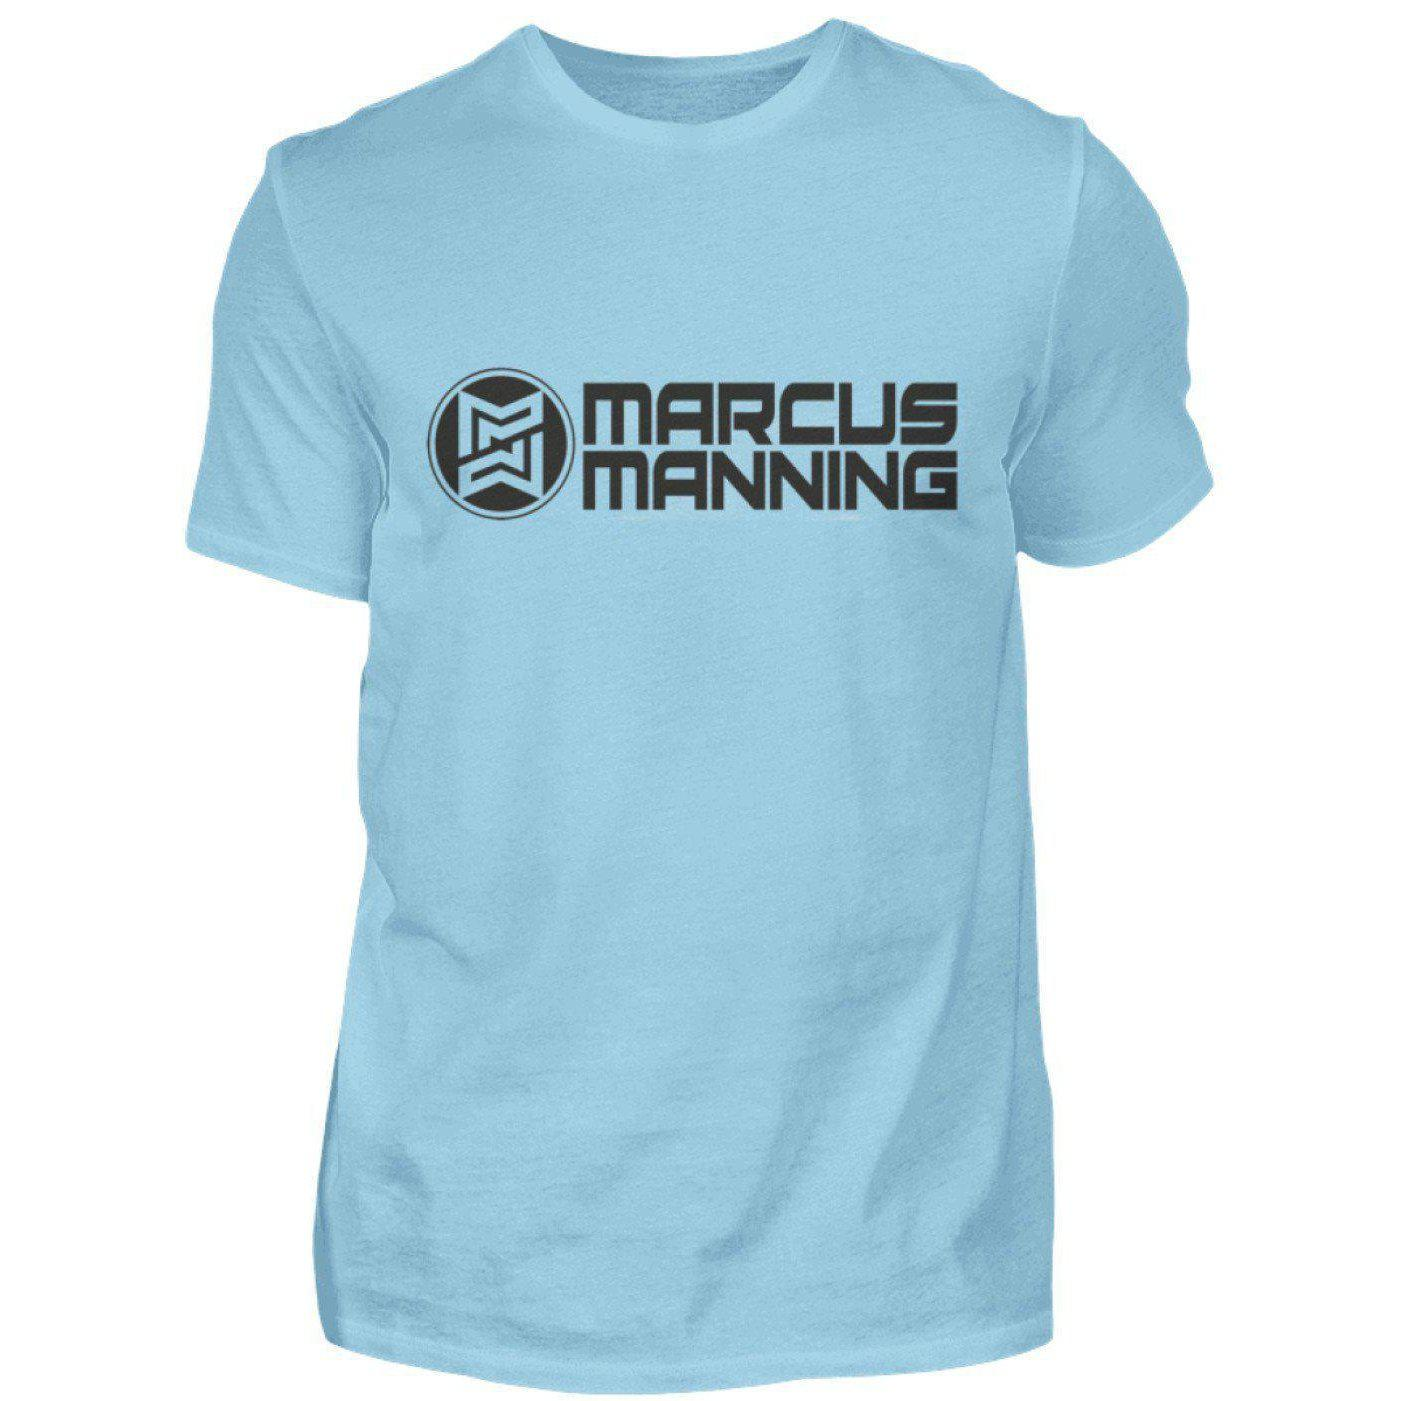 Marcus Manning Light Collection - Men's Shirt Men's Basic T-Shirt Sky Blue / S - Rave On!® the club & techno scene shop for cool young fashion streetwear style & fashion outfits + sexy festival 420 stuff